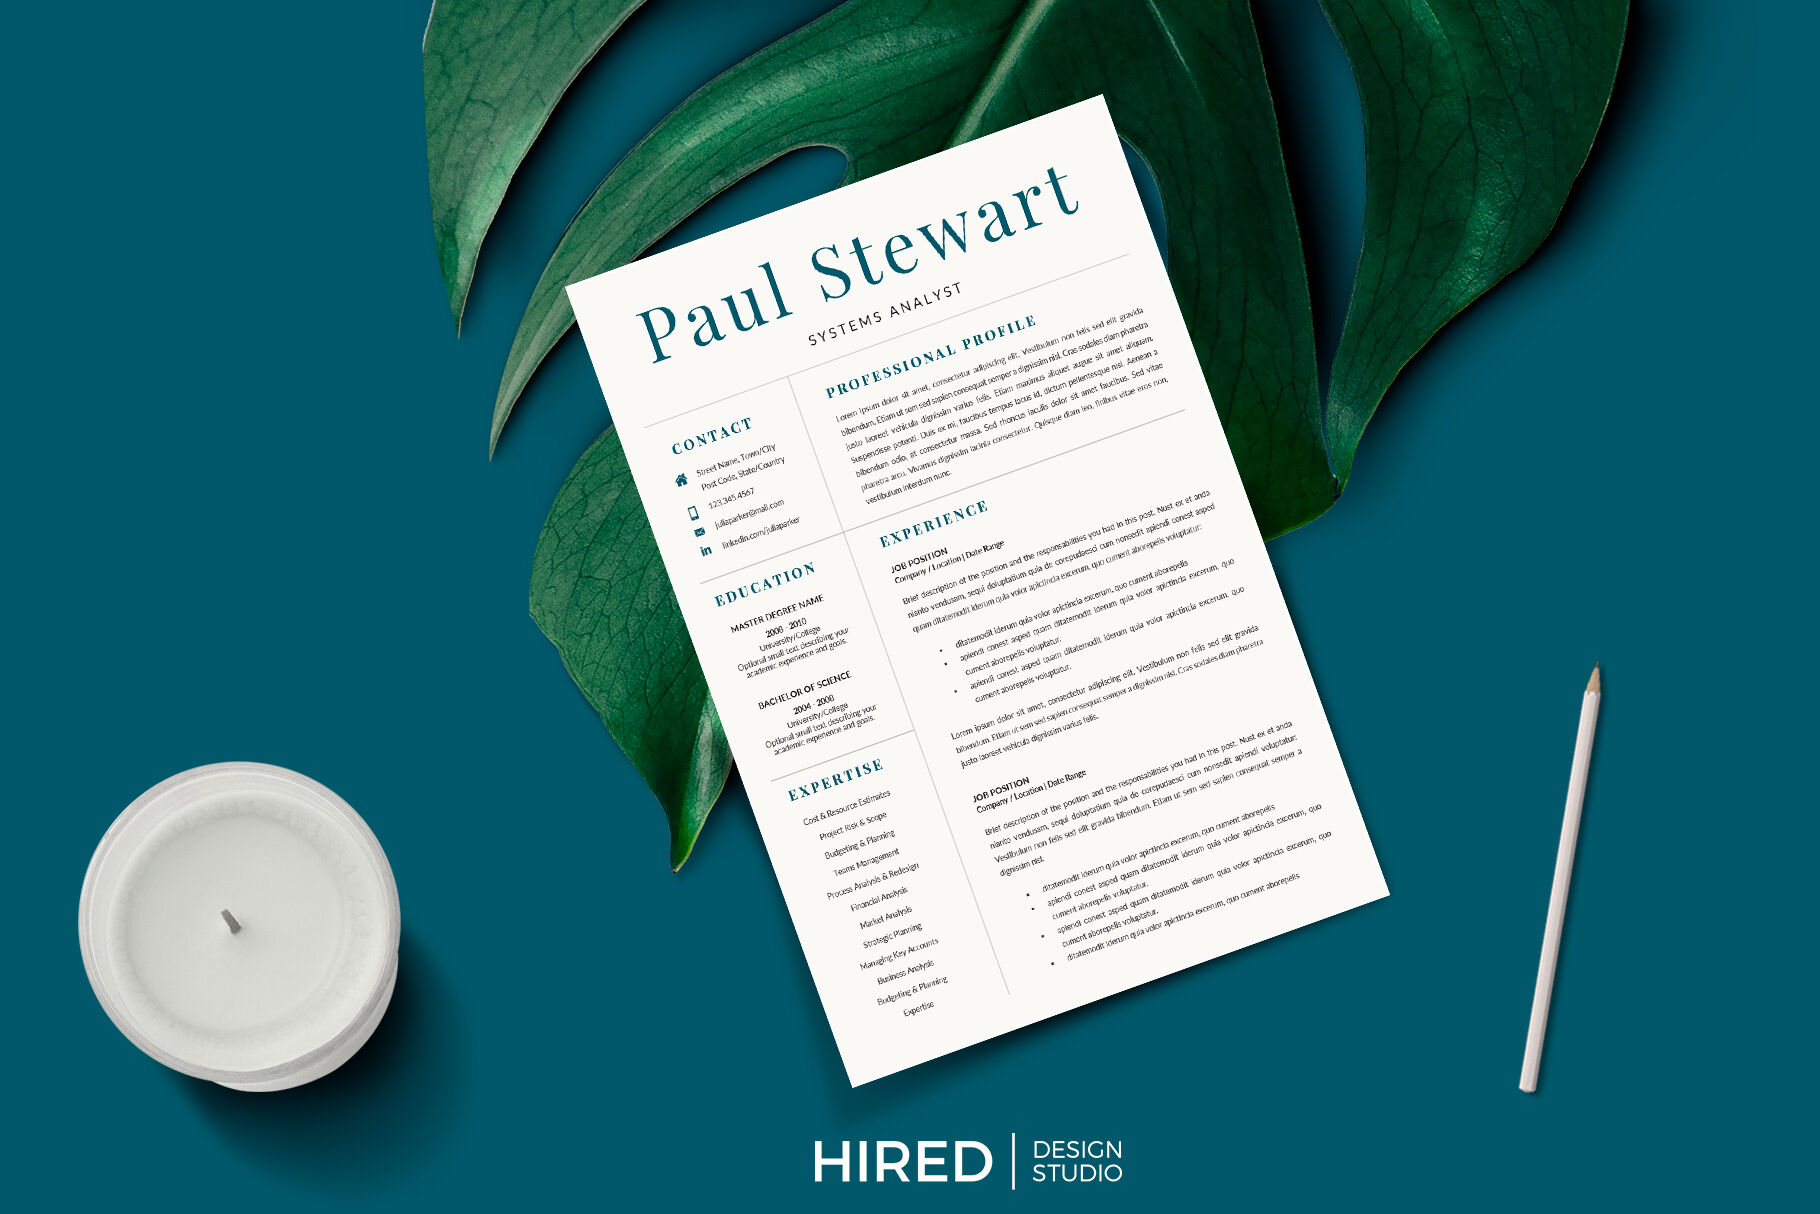 professional cover letter and 2 column resume with references page  by hiredds